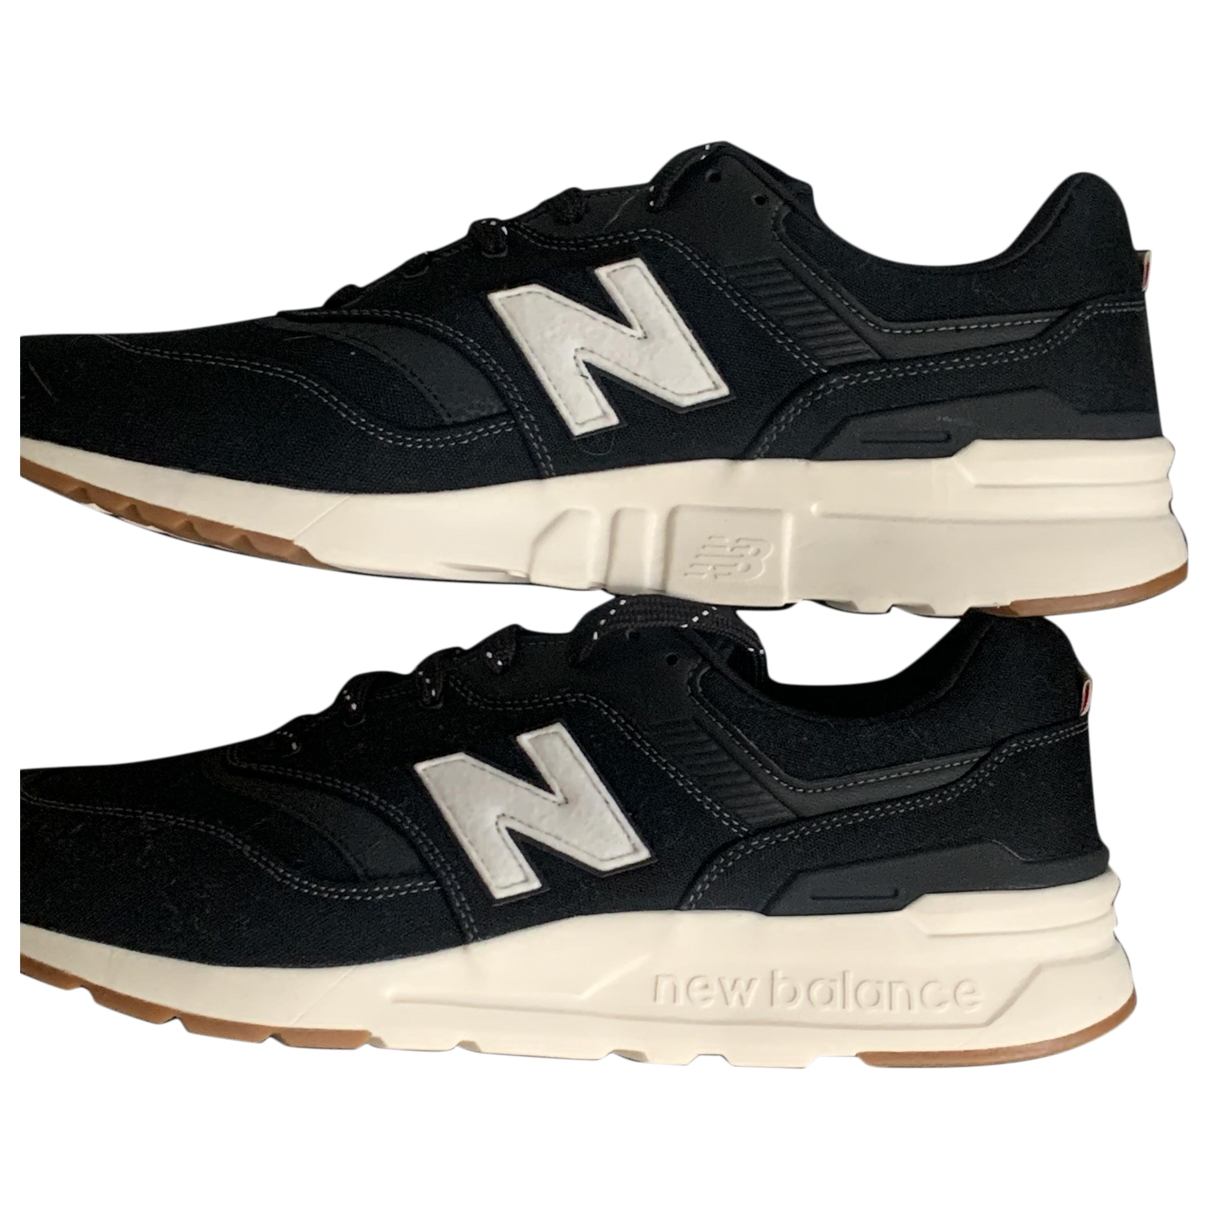 New Balance \N Black Suede Trainers for Men 46.5 EU